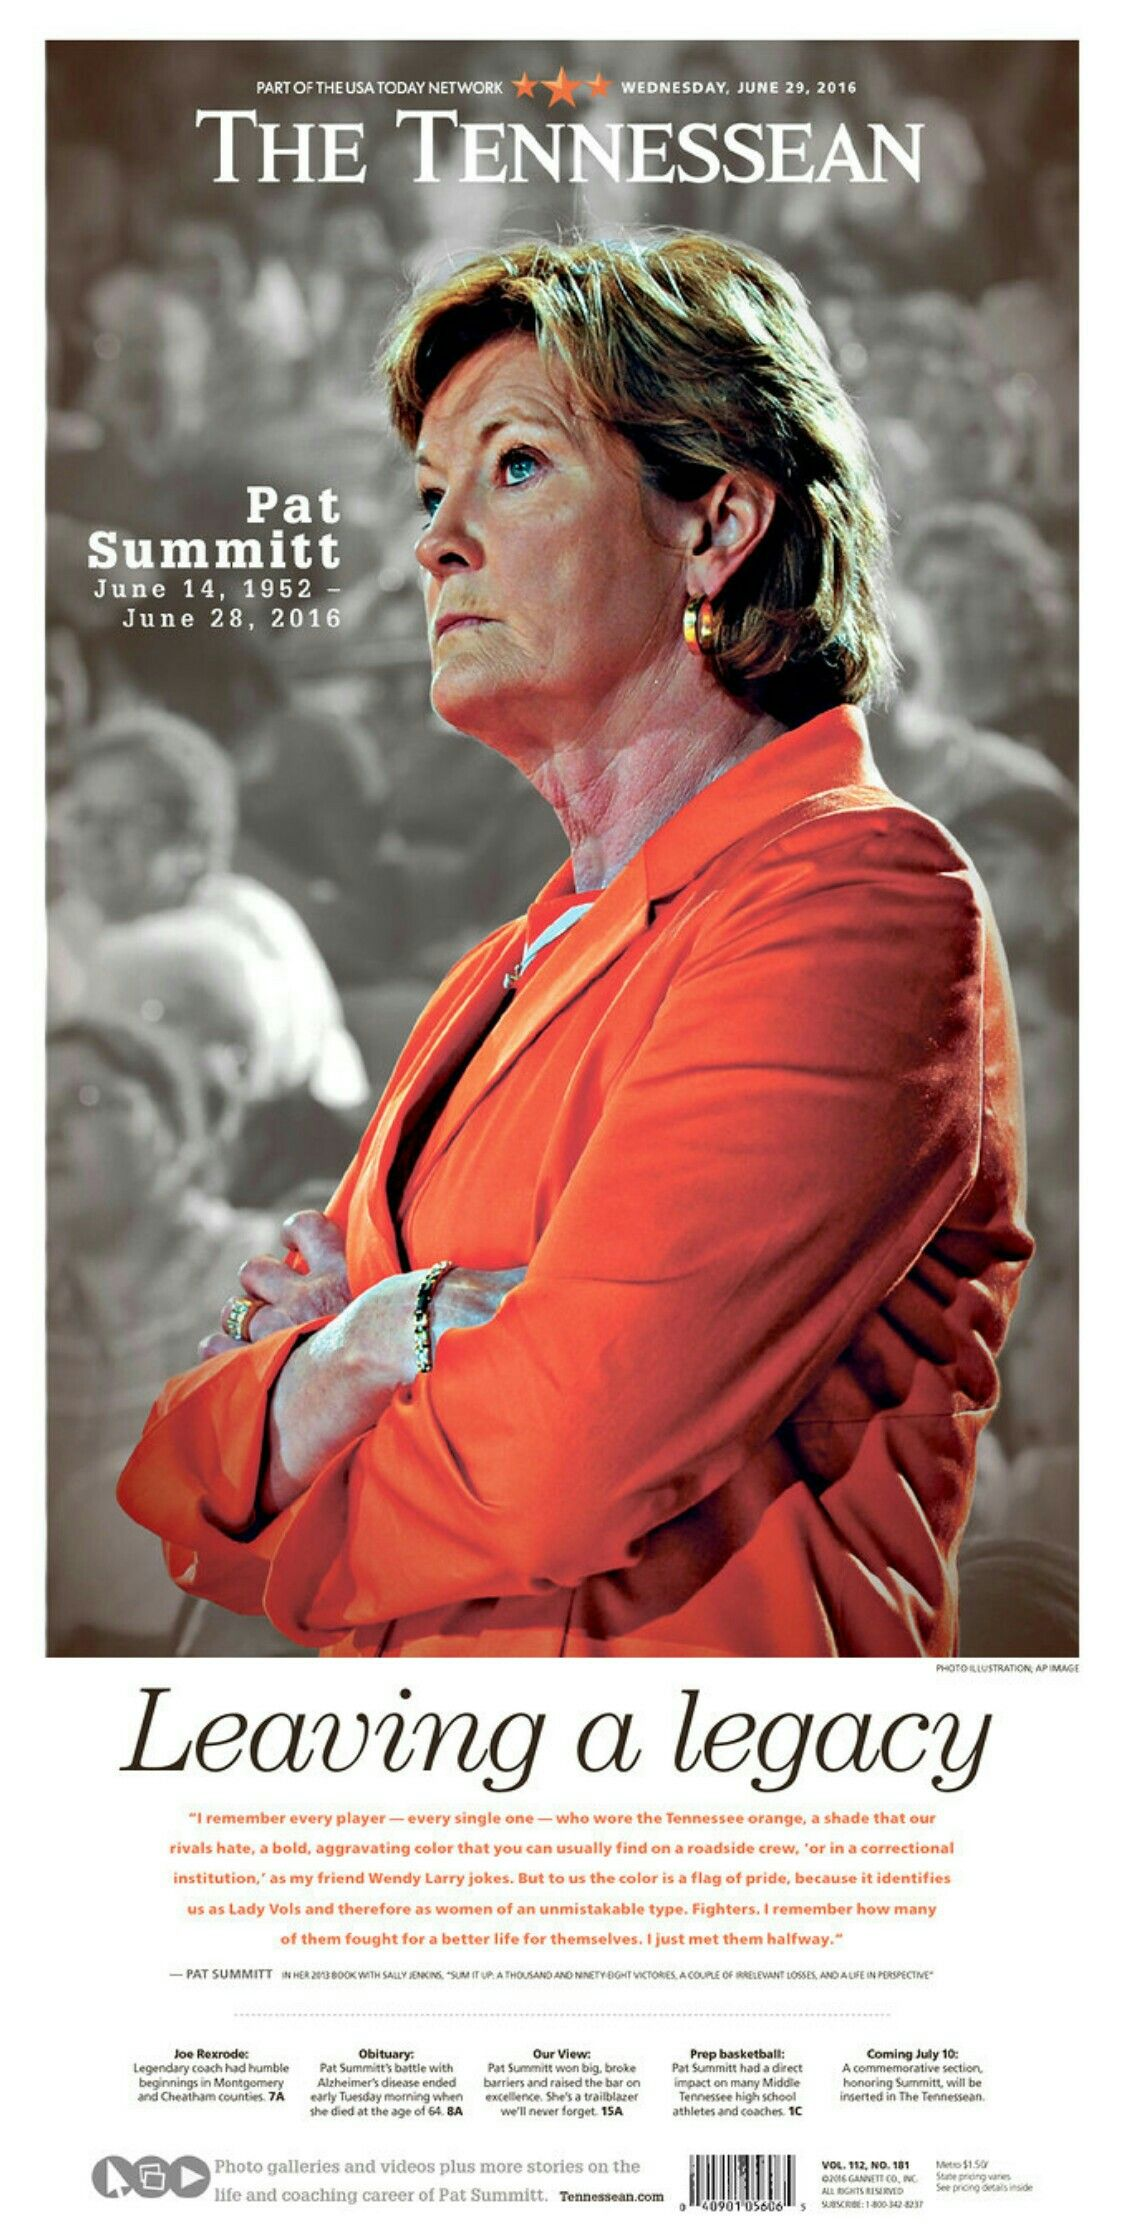 Pat Summit (June 14, 1952 June 28, 2016 (With images